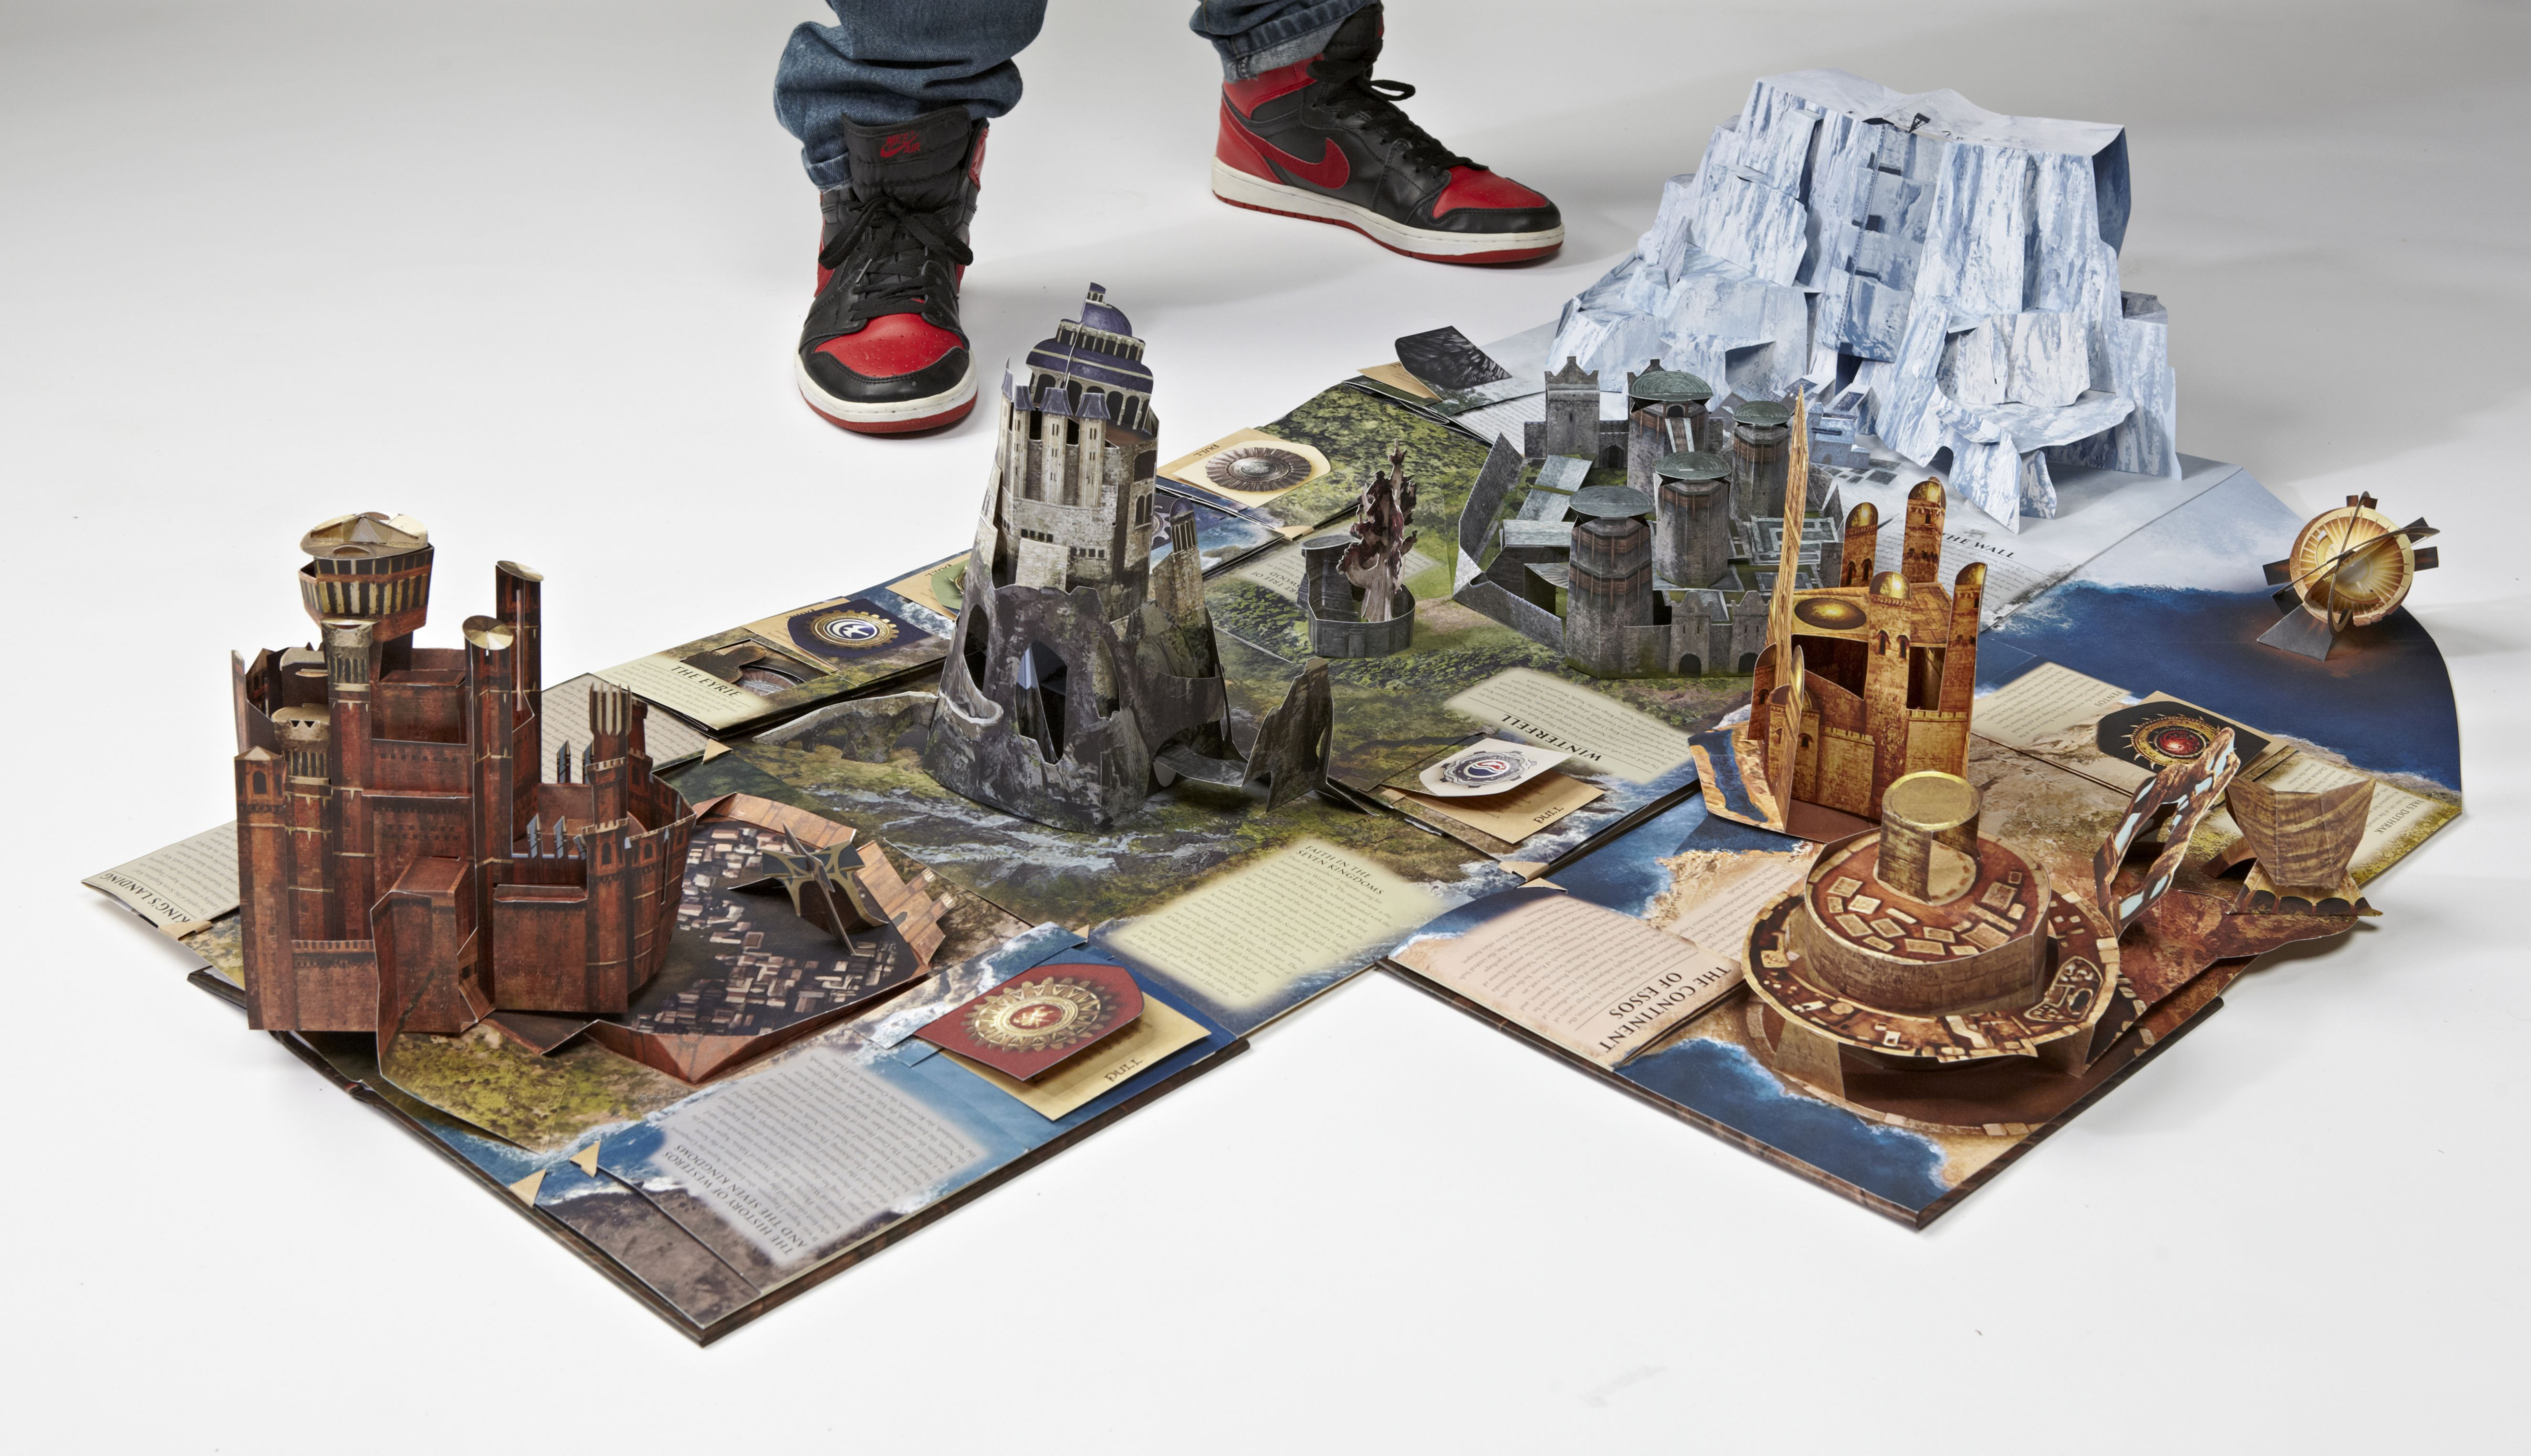 Where can I find out how to make complicated pop up books or paper engineering?